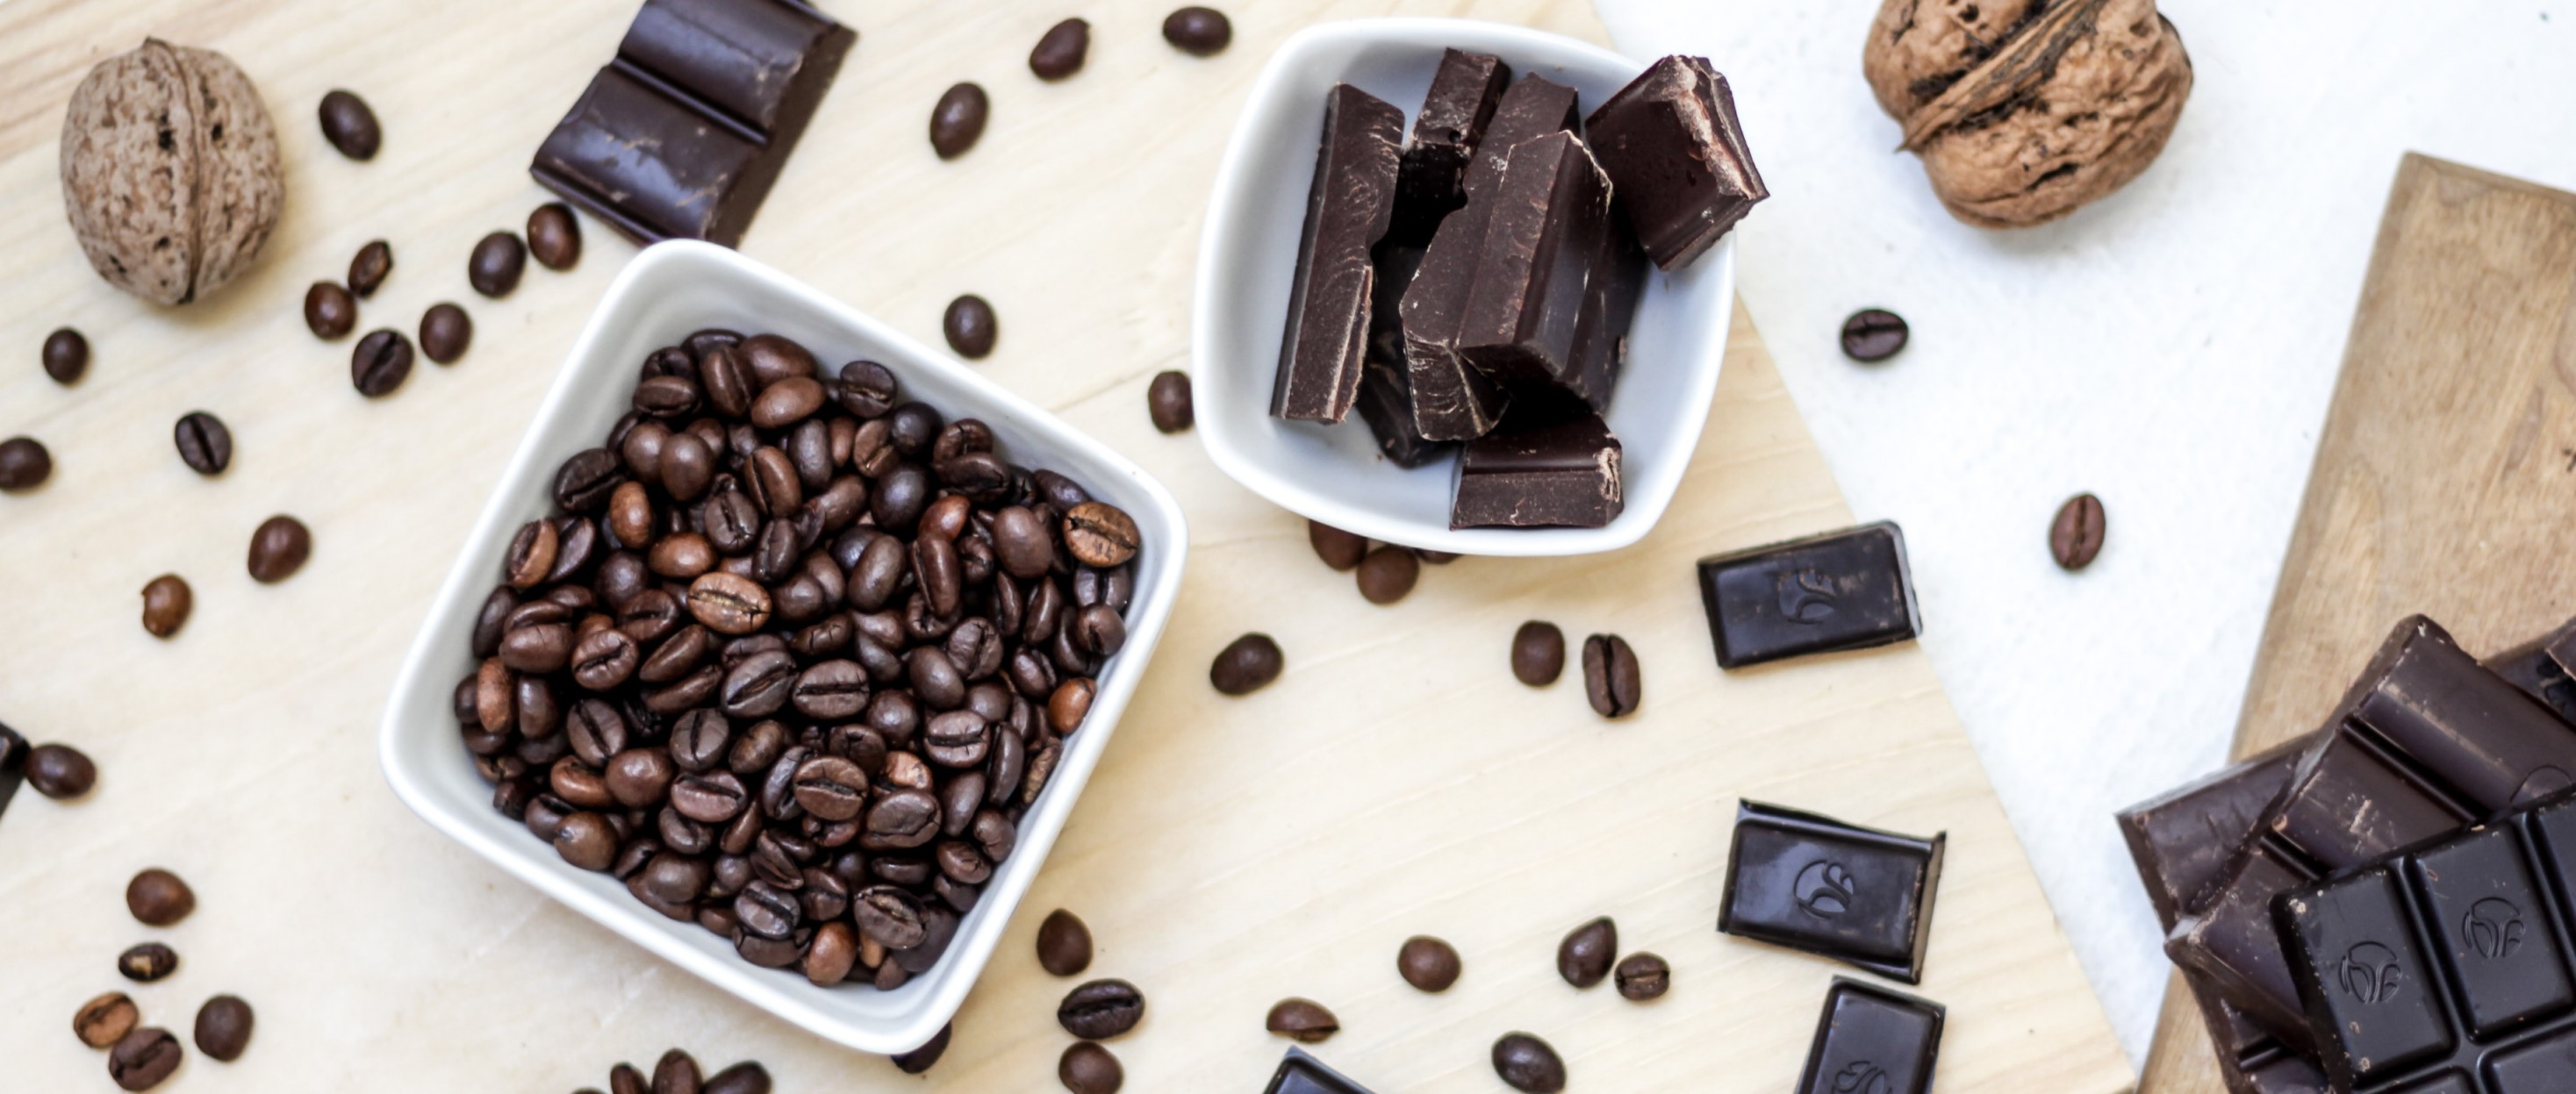 These Sinfully Hydrating Cocoa Products Deserve Some Space On Your Counter